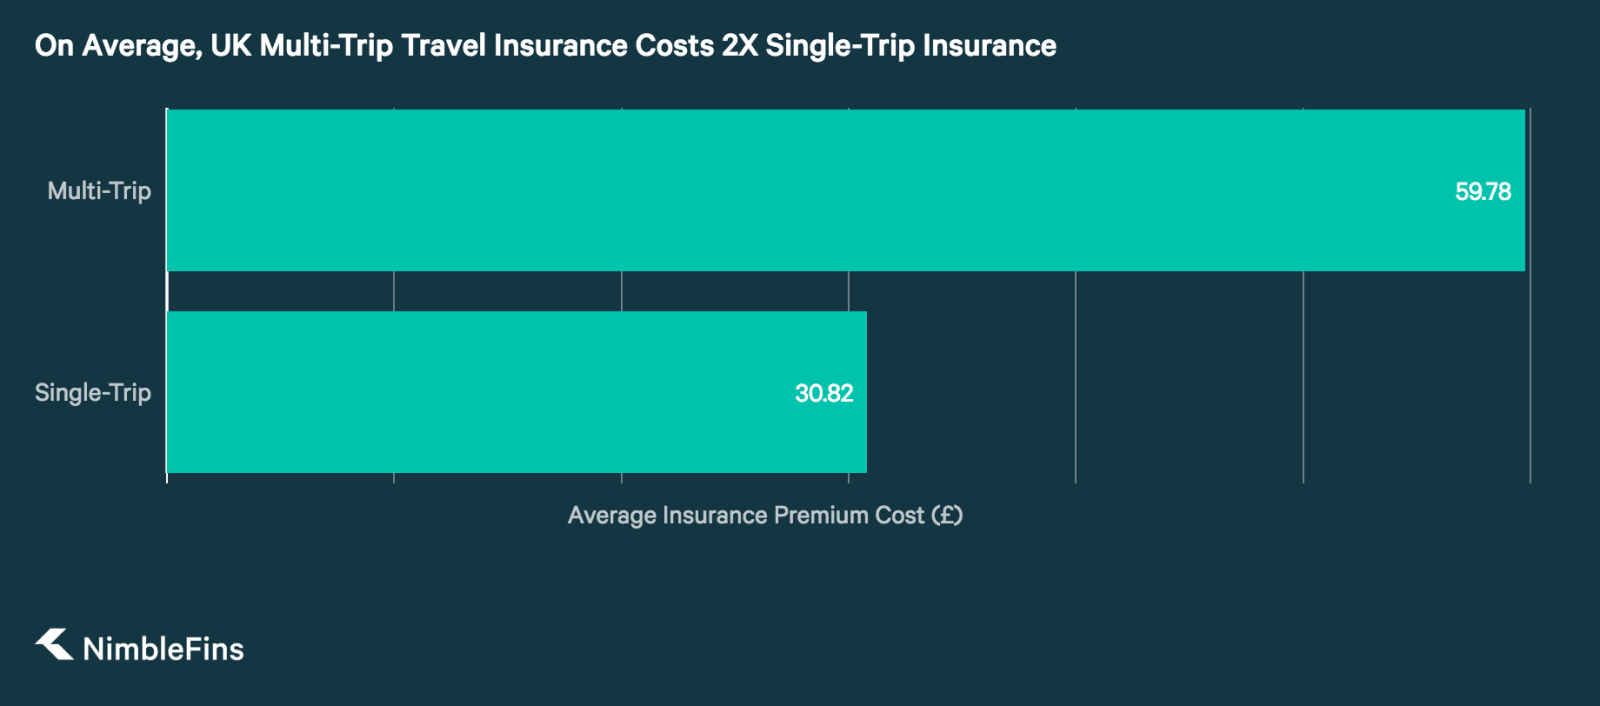 Chart showing that Multi-Trip Travel Insurance Costs 2X Single-Trip Insurance